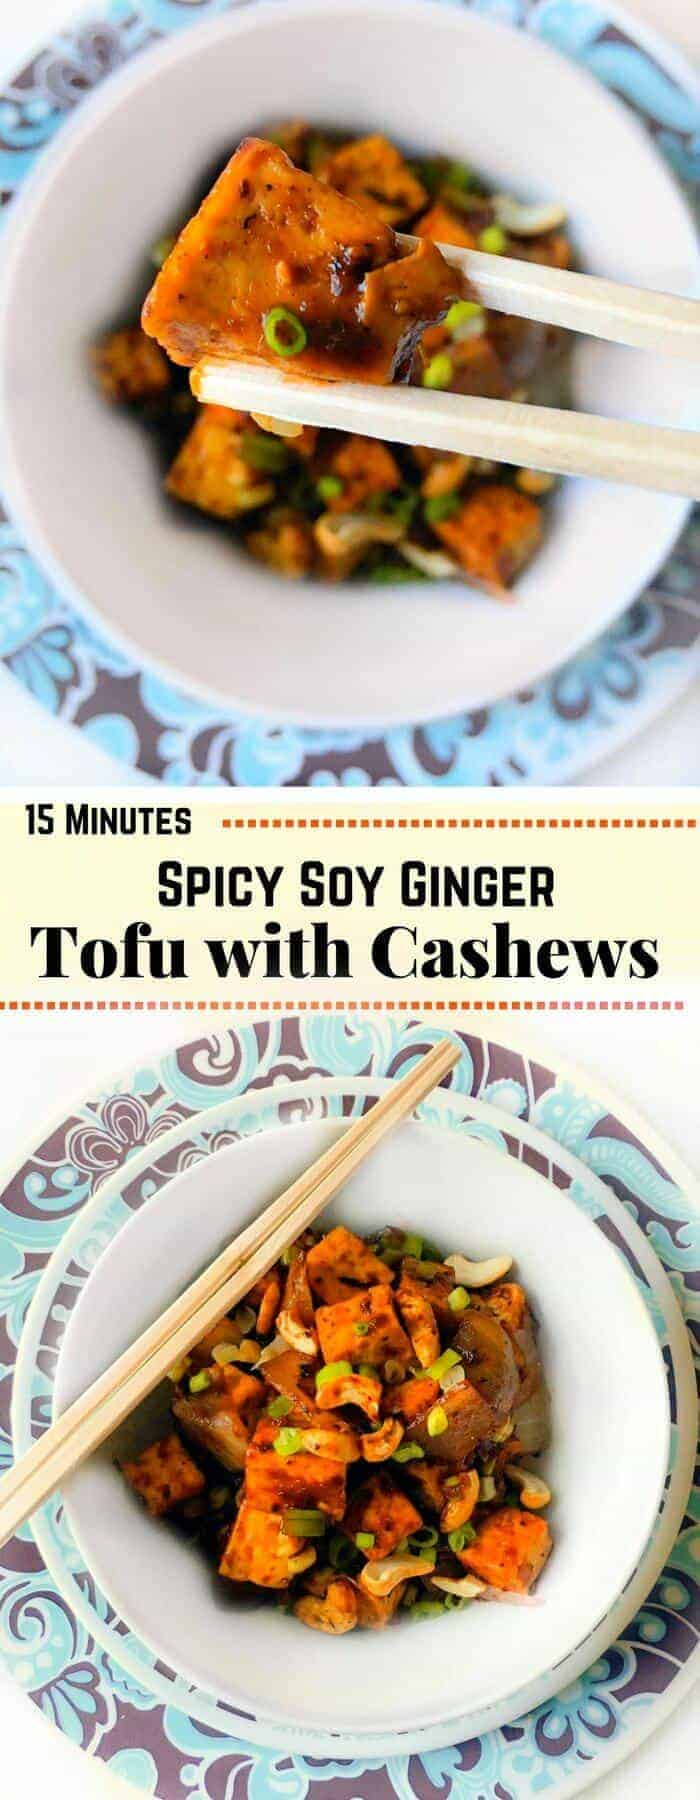 15 Minutes Spicy Soy Ginger Tofu with Cashews : #tofu #spicy #dinner #cashew #ginger